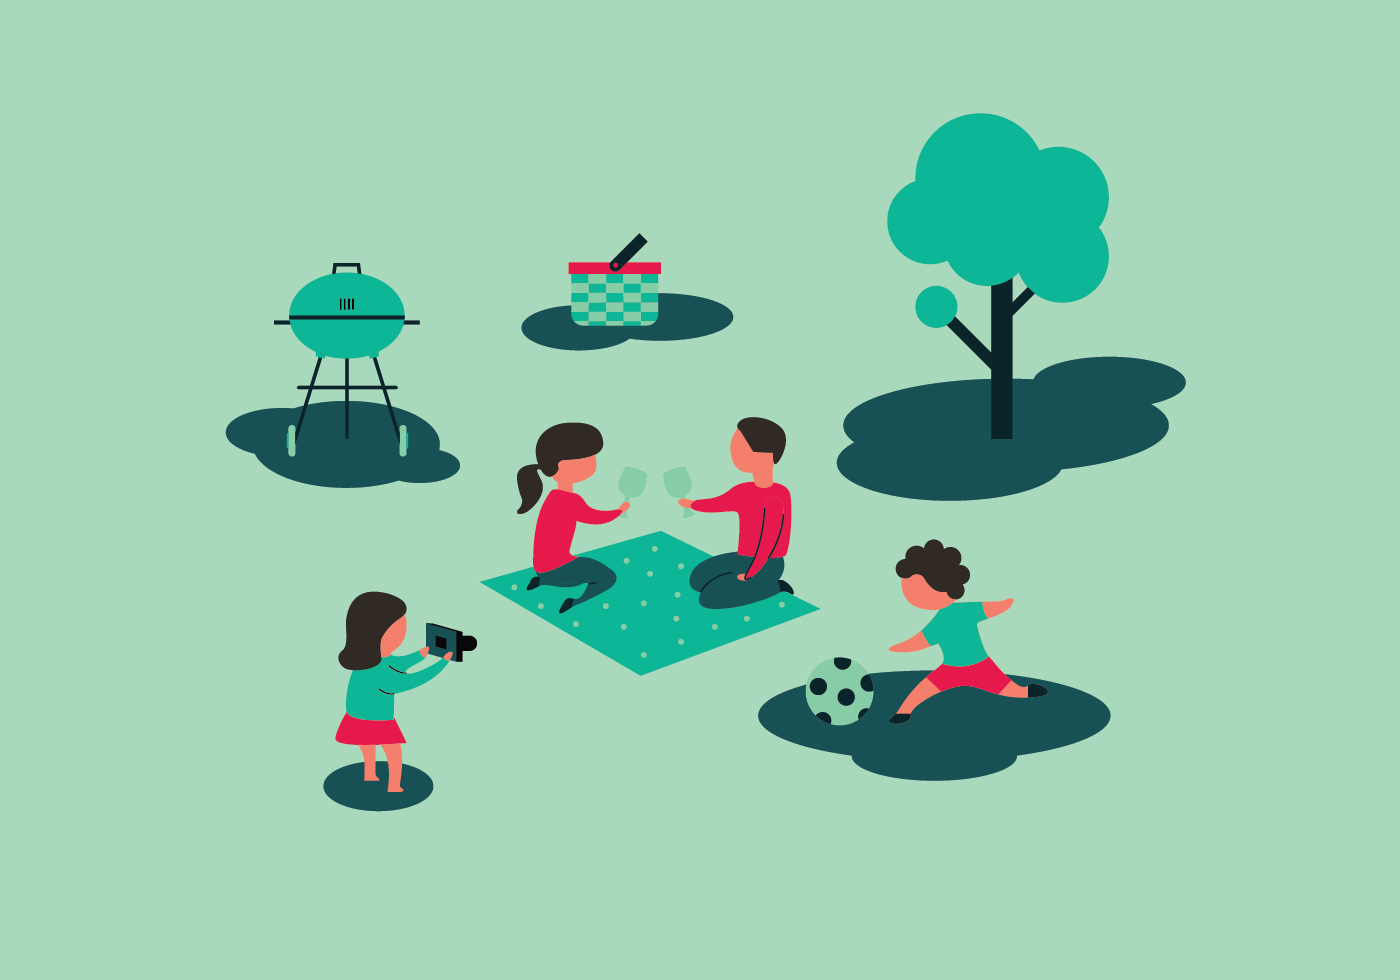 Family Picnic Illustrations - Download Free Vector Art, Stock Graphics & Images